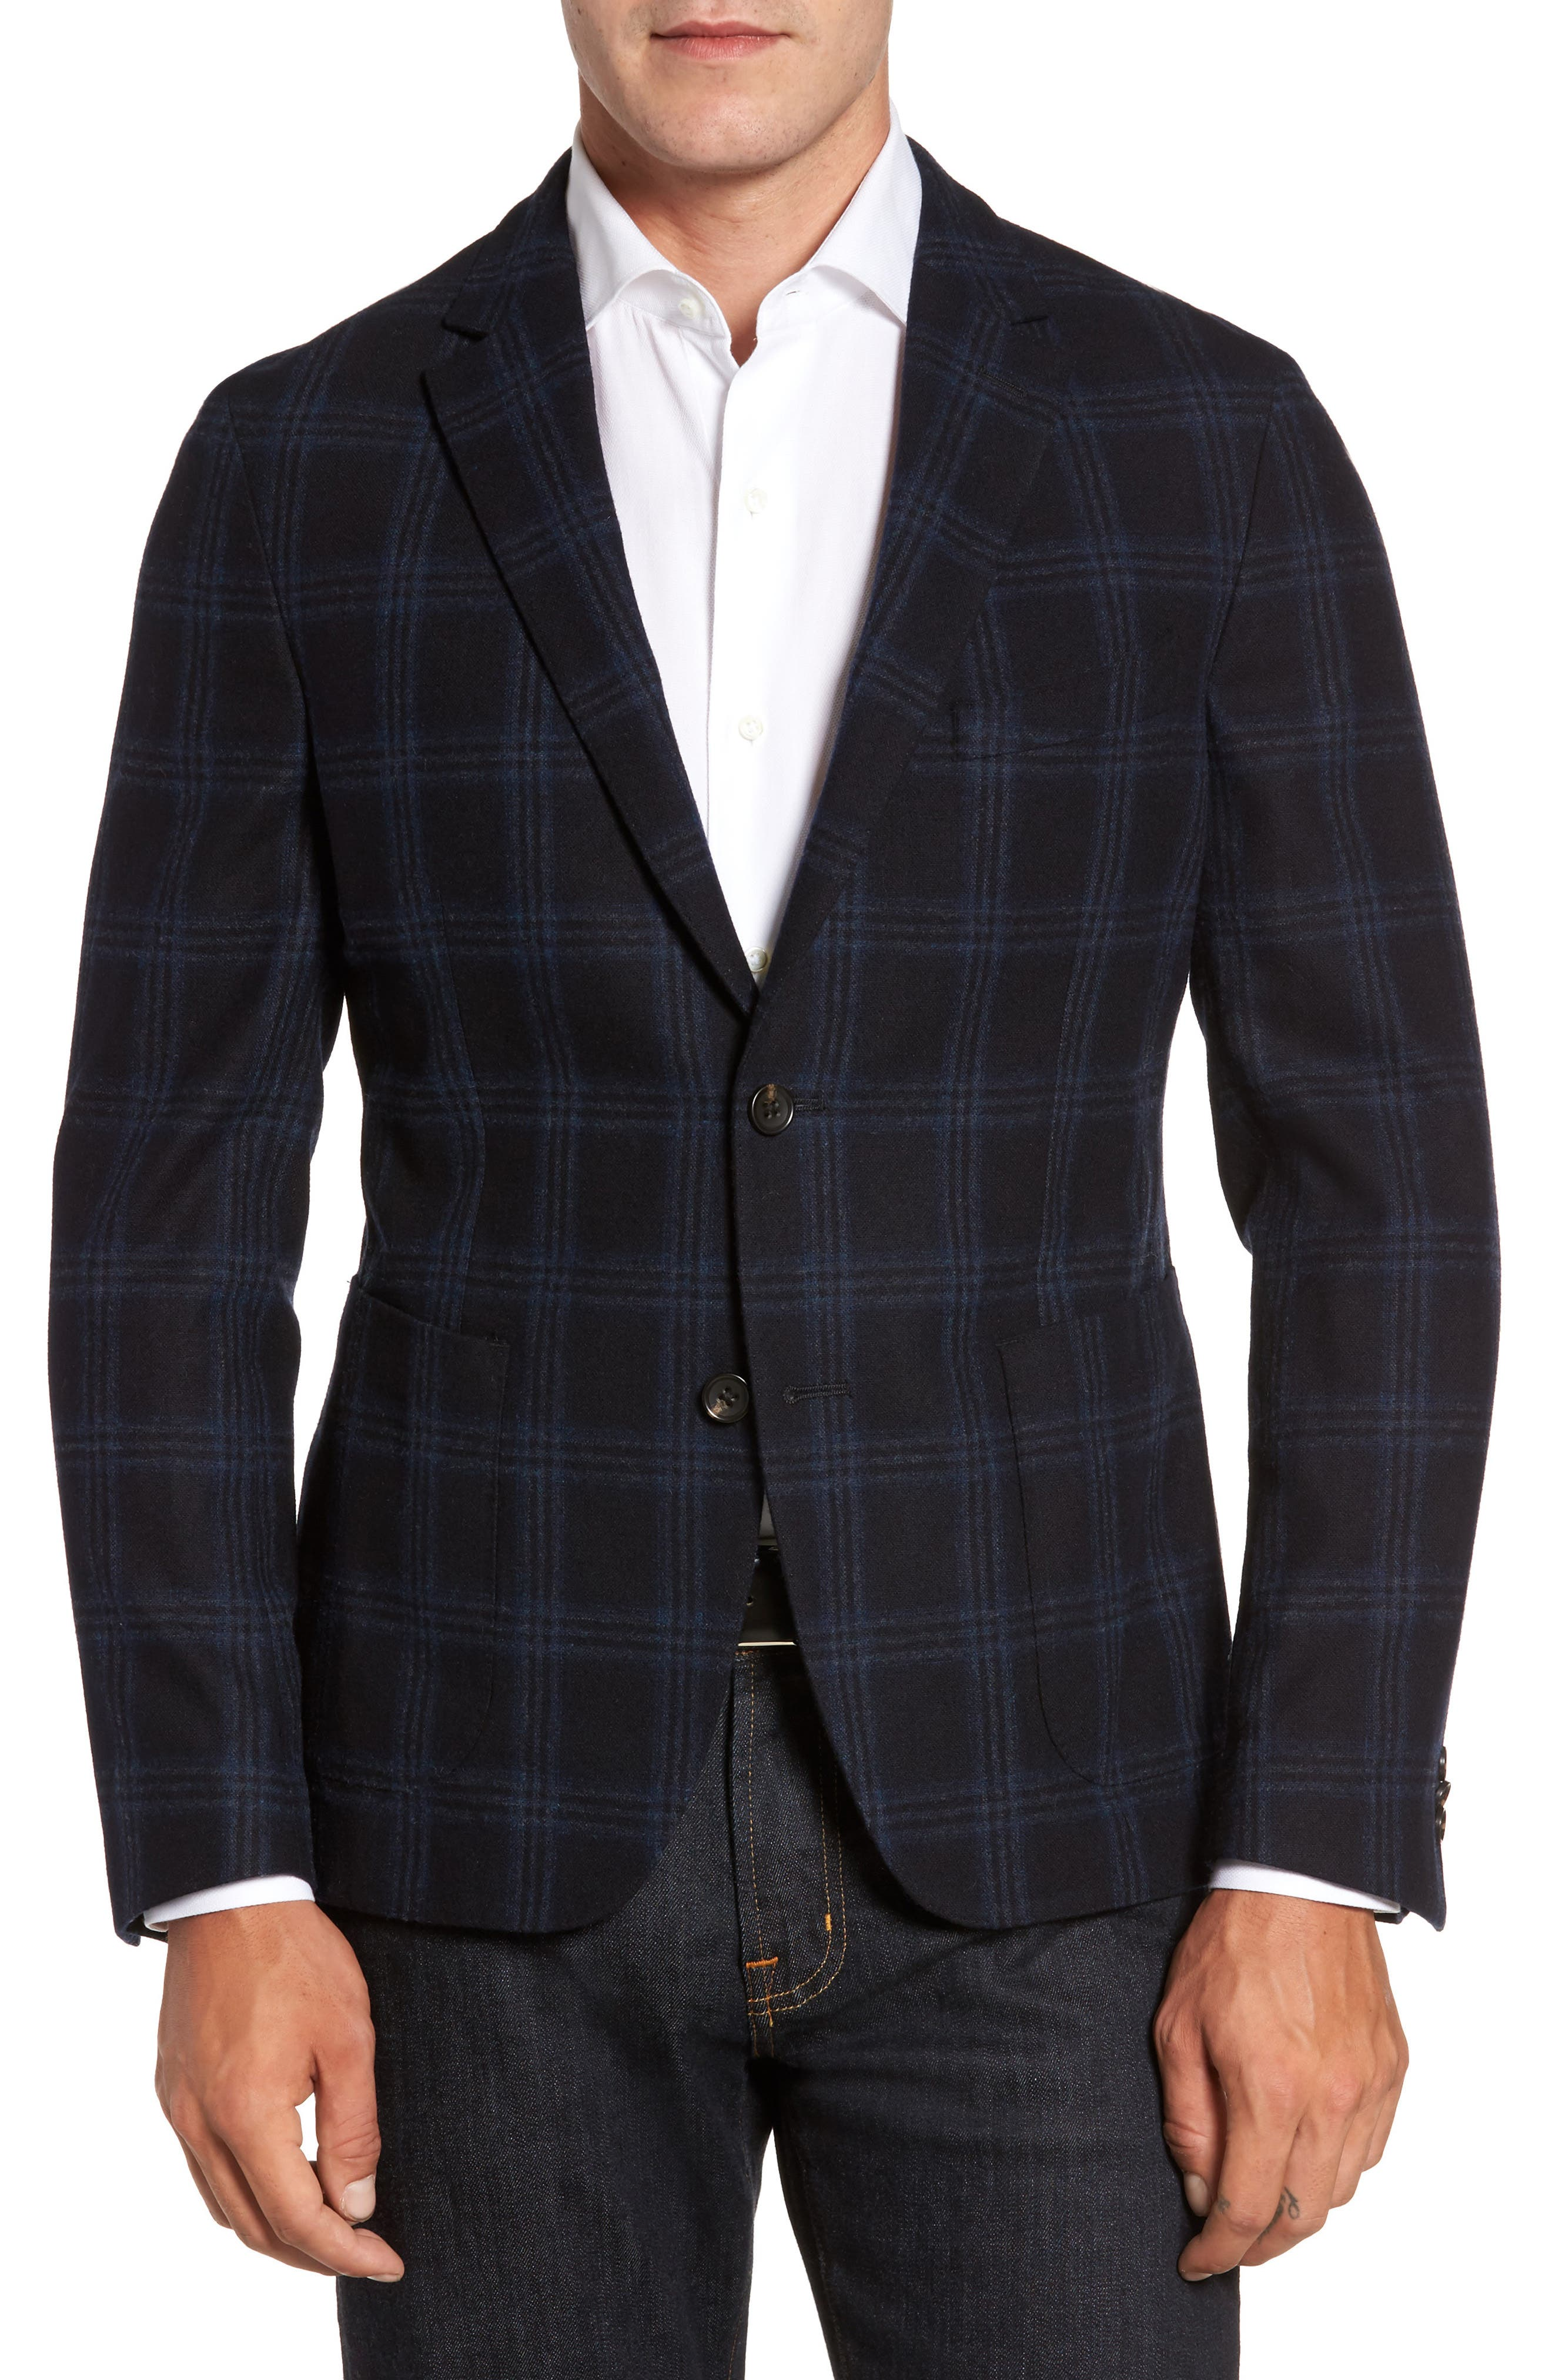 Alternate Image 1 Selected - FLYNT Classic Fit Windowpane Wool & Cashmere Jersey Sport Coat